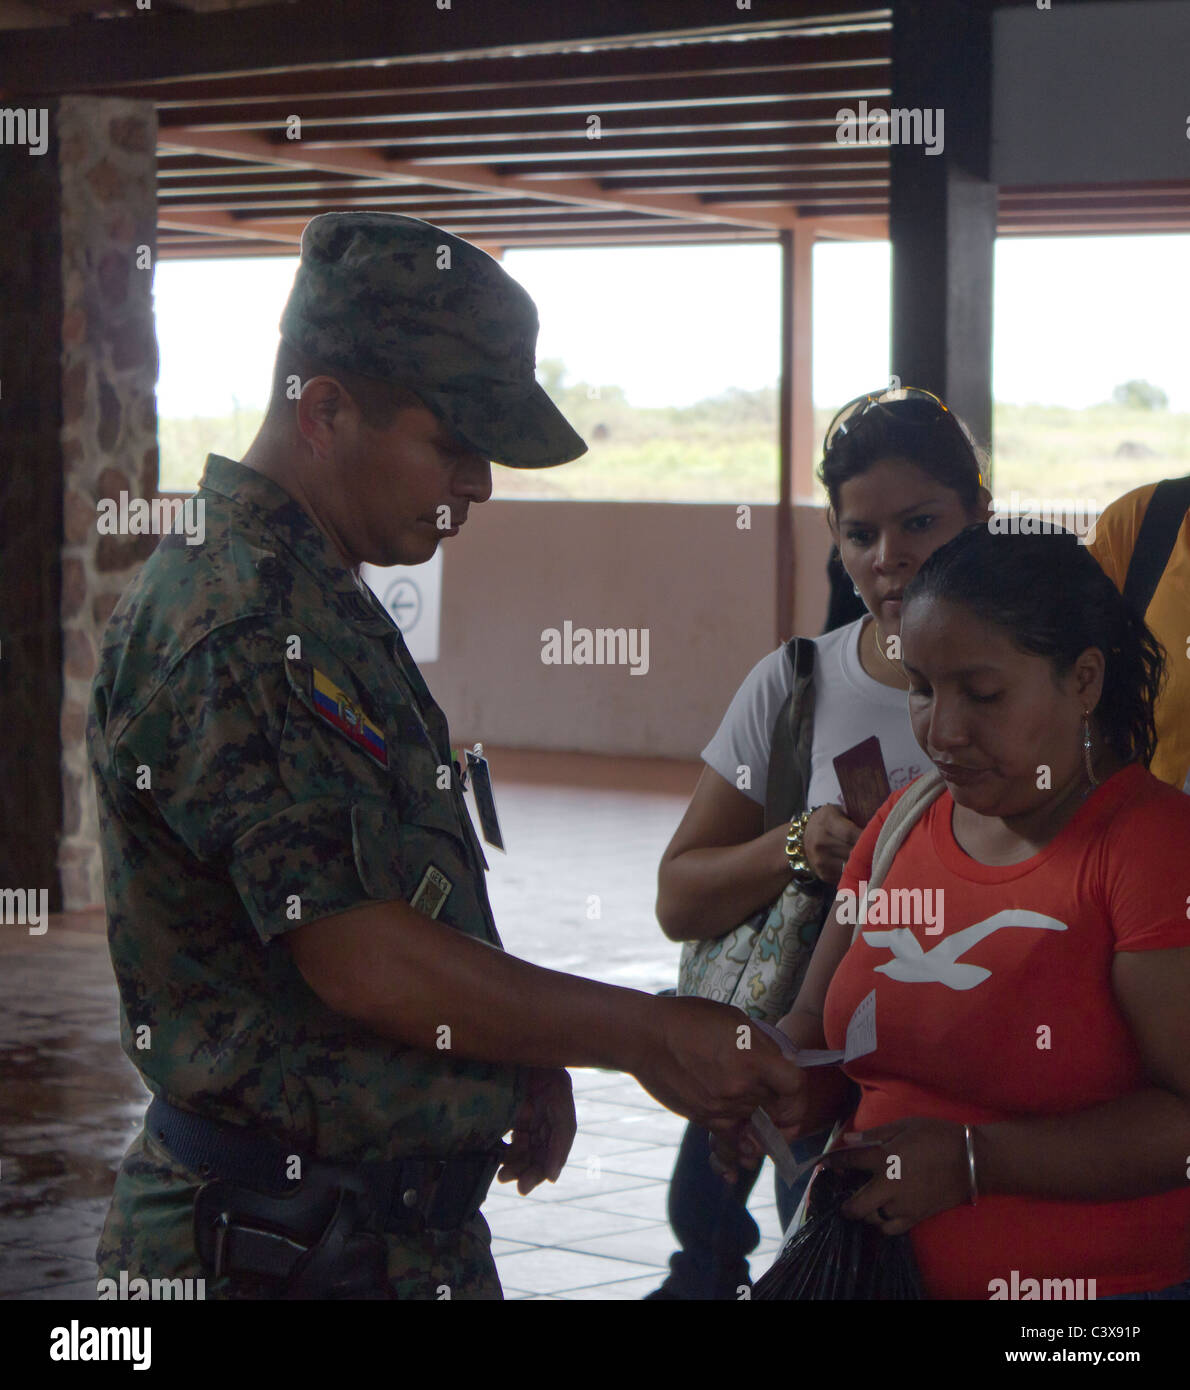 army official checking passport of traveller, Seymour airport, Baltra Island, Galapagos Islands, Ecuador - Stock Image